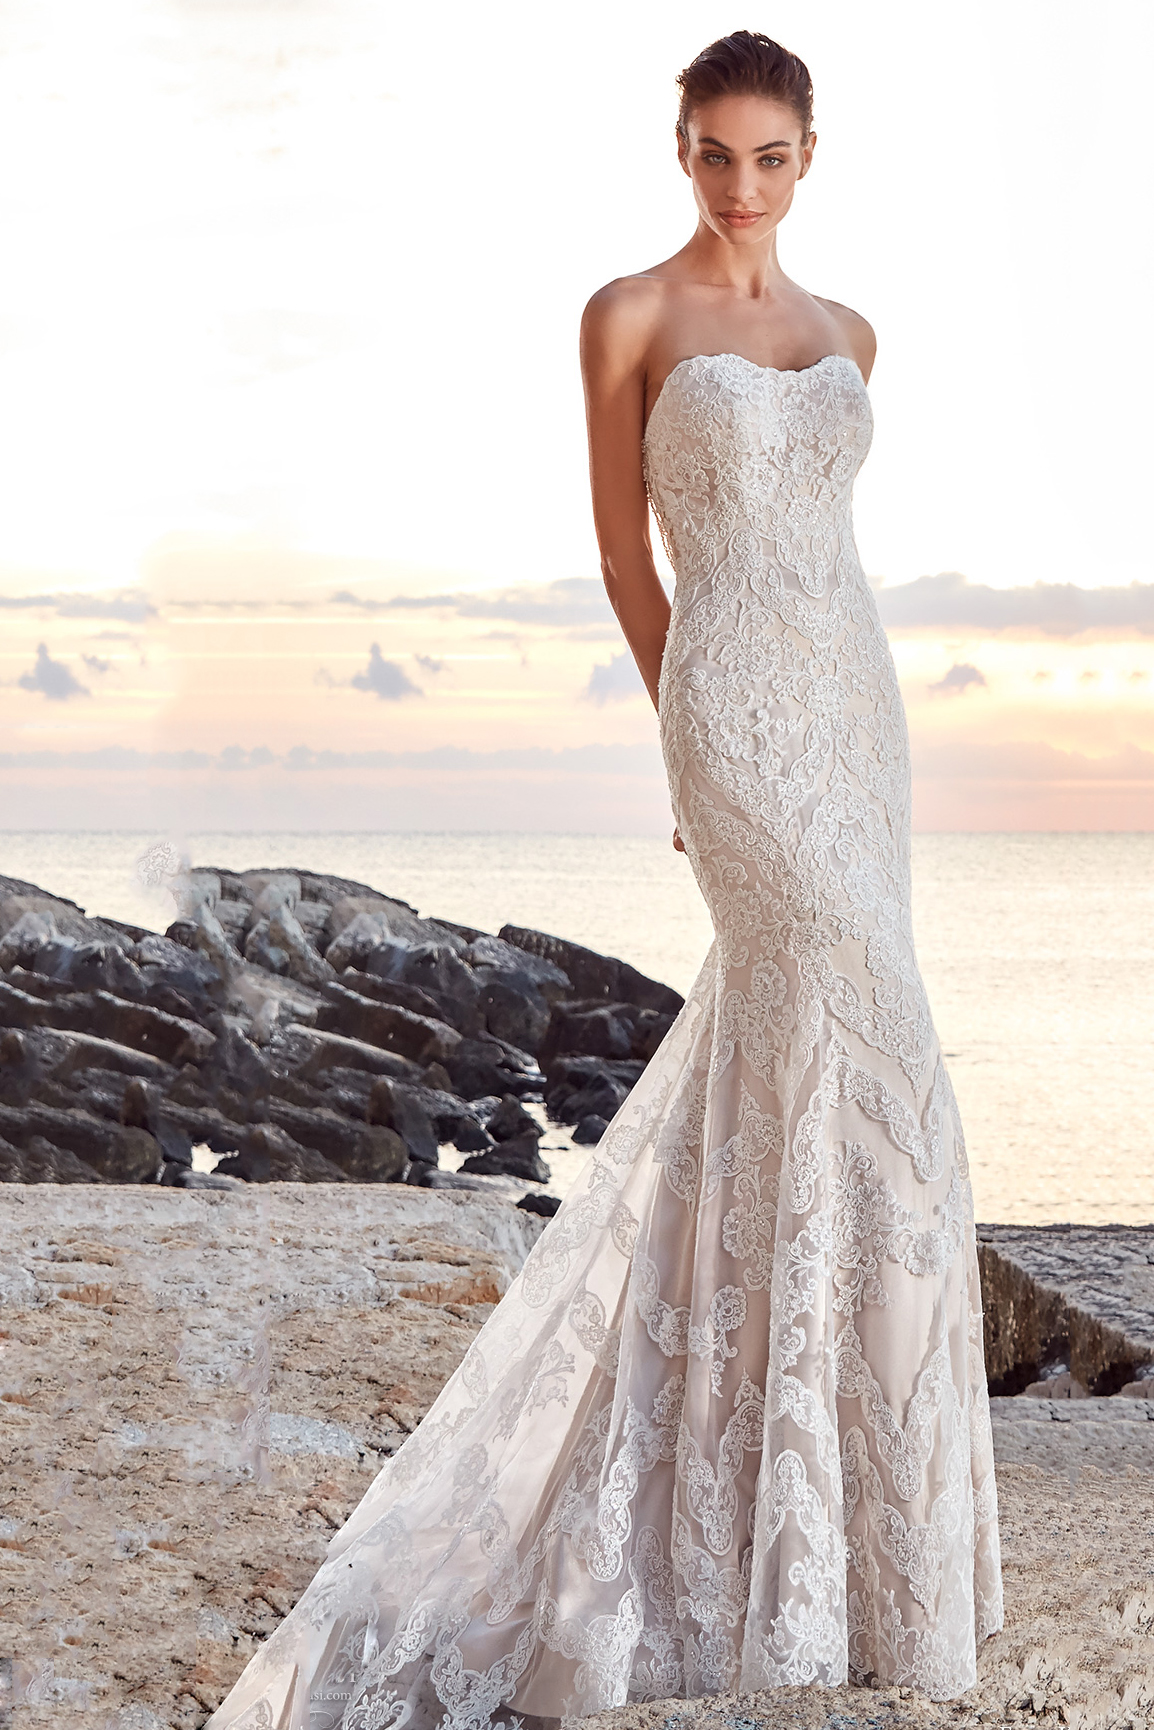 Luxury Beaded Lace Mermaid Long White Bridal Dress Beach Wedding